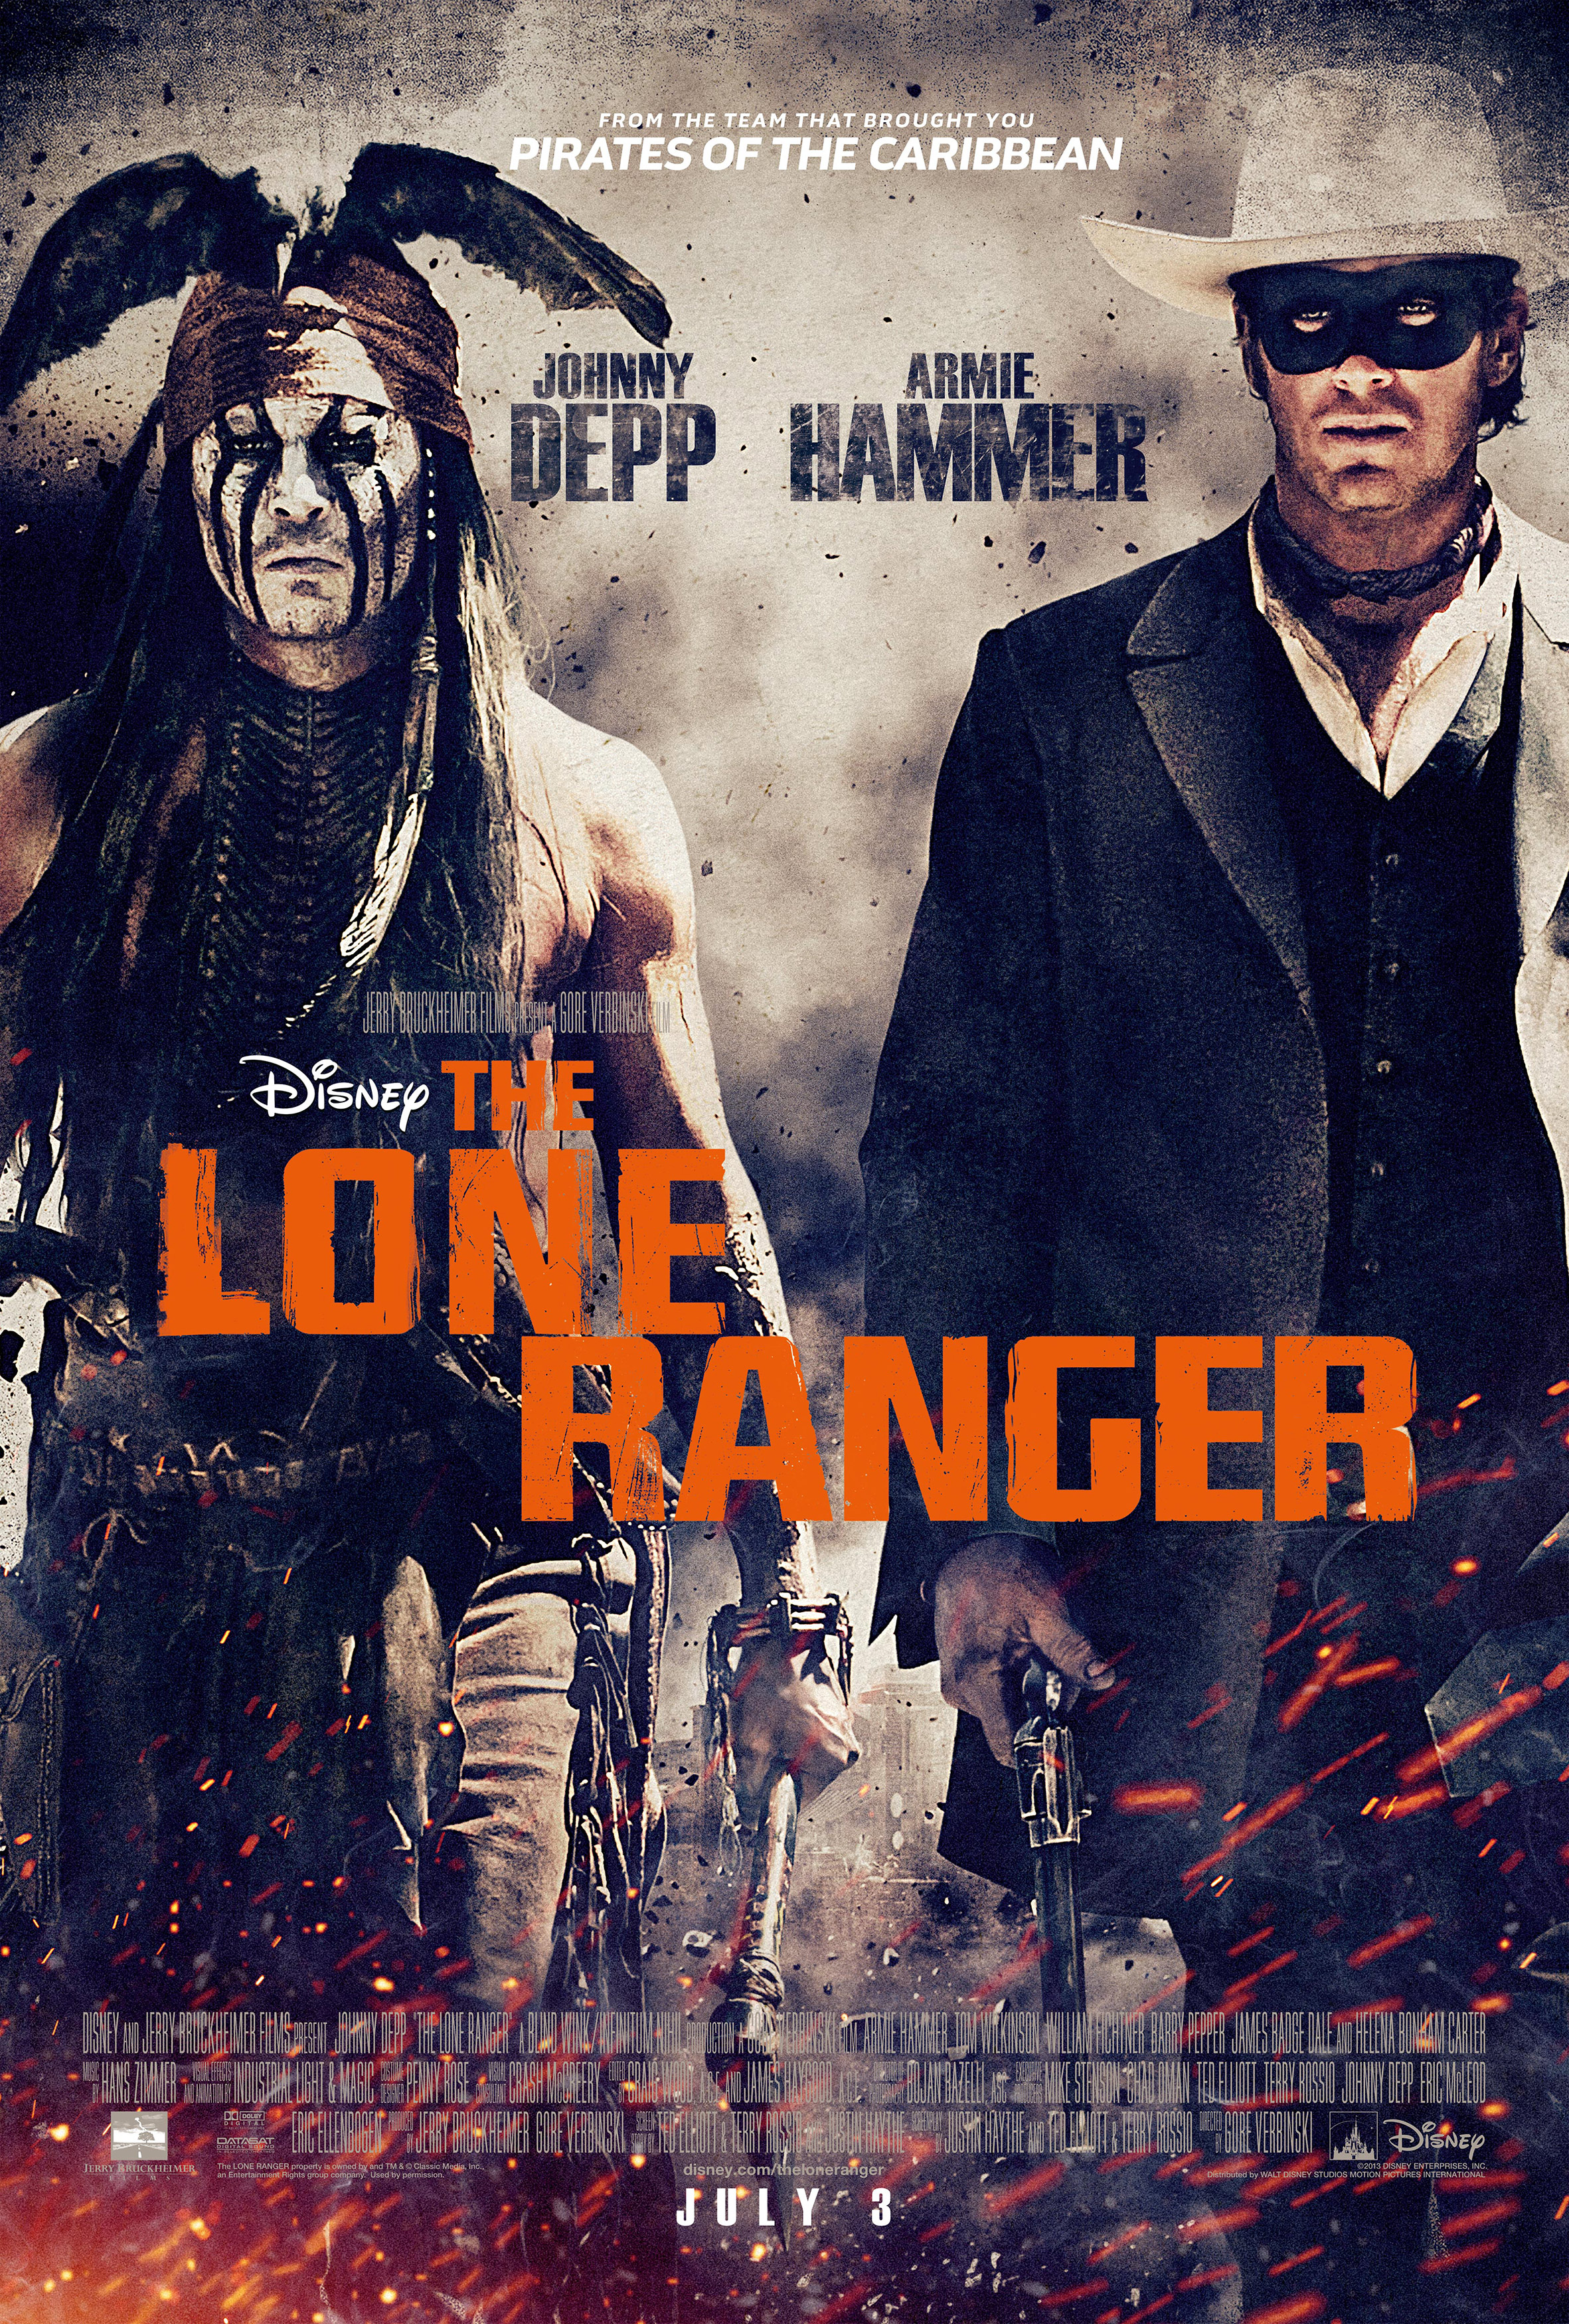 Nice wallpapers The Lone Ranger 2363x3500px